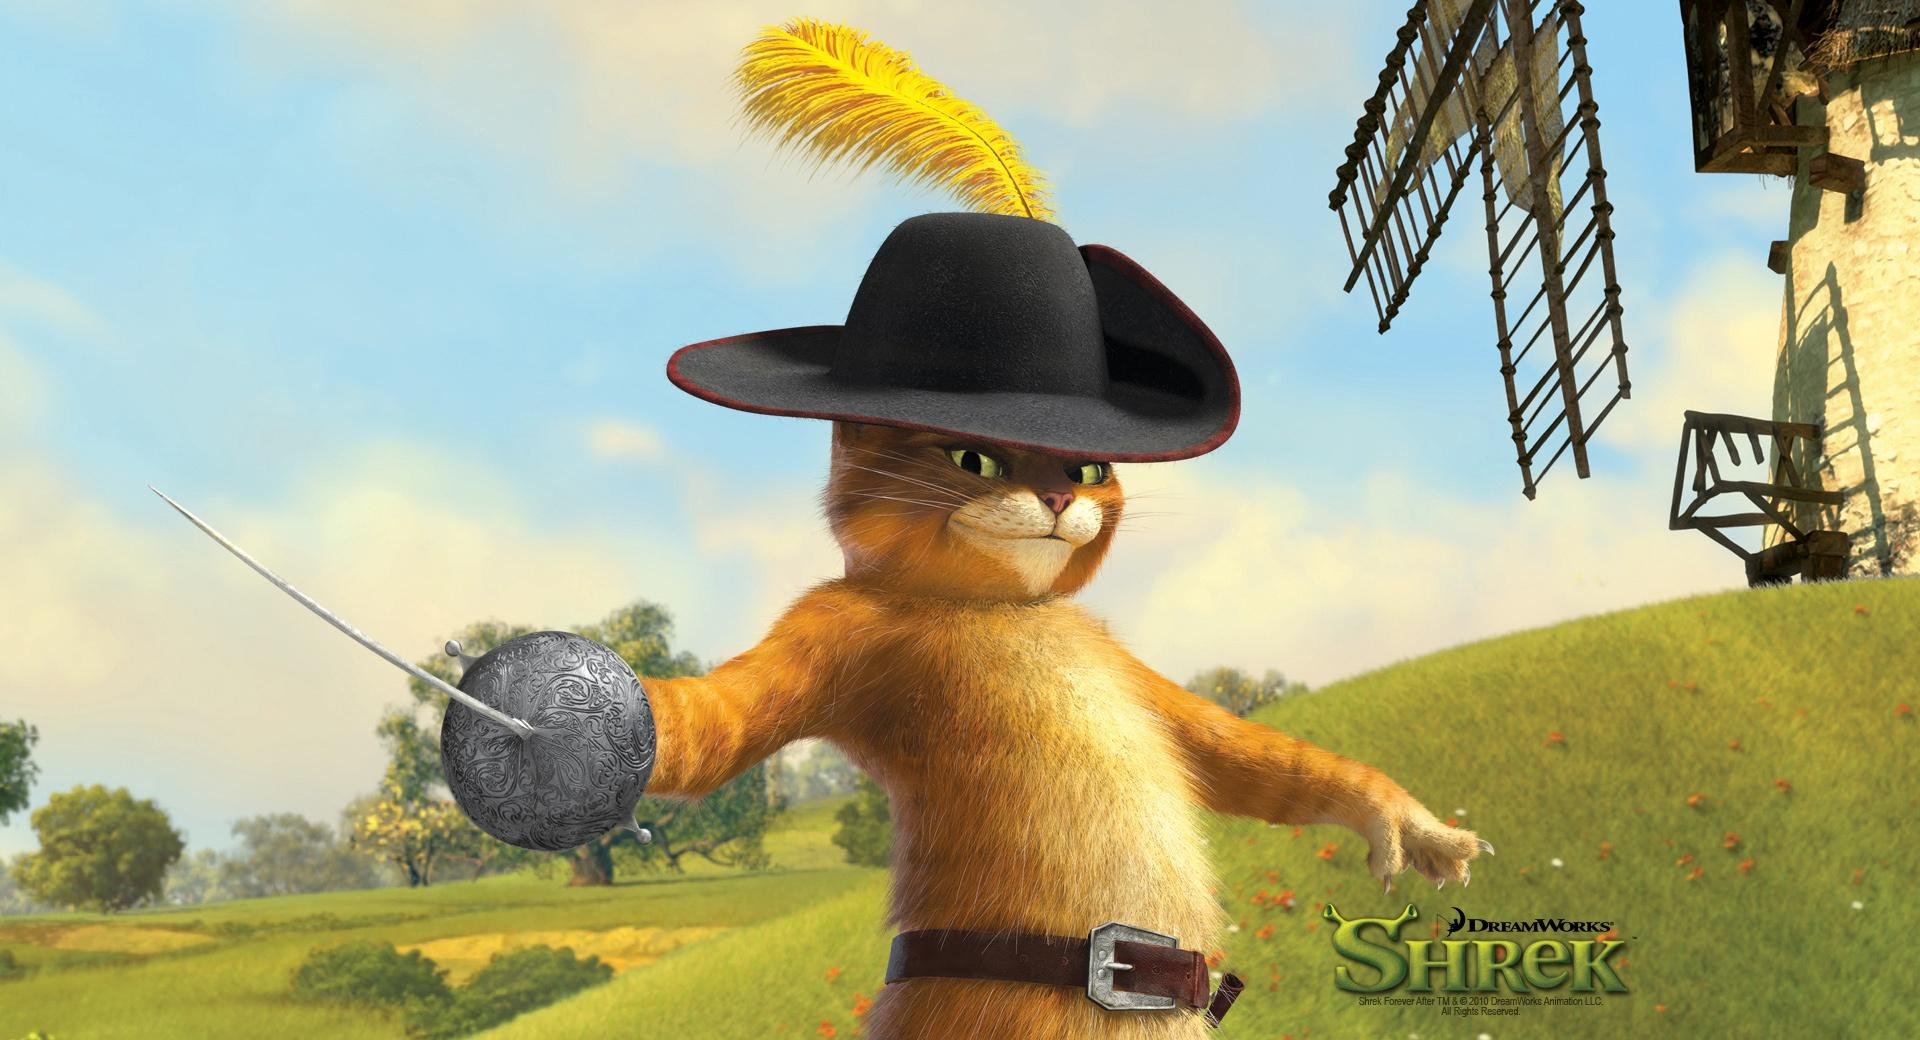 Puss in Boots, Shrek The Final Chapter wallpapers HD quality